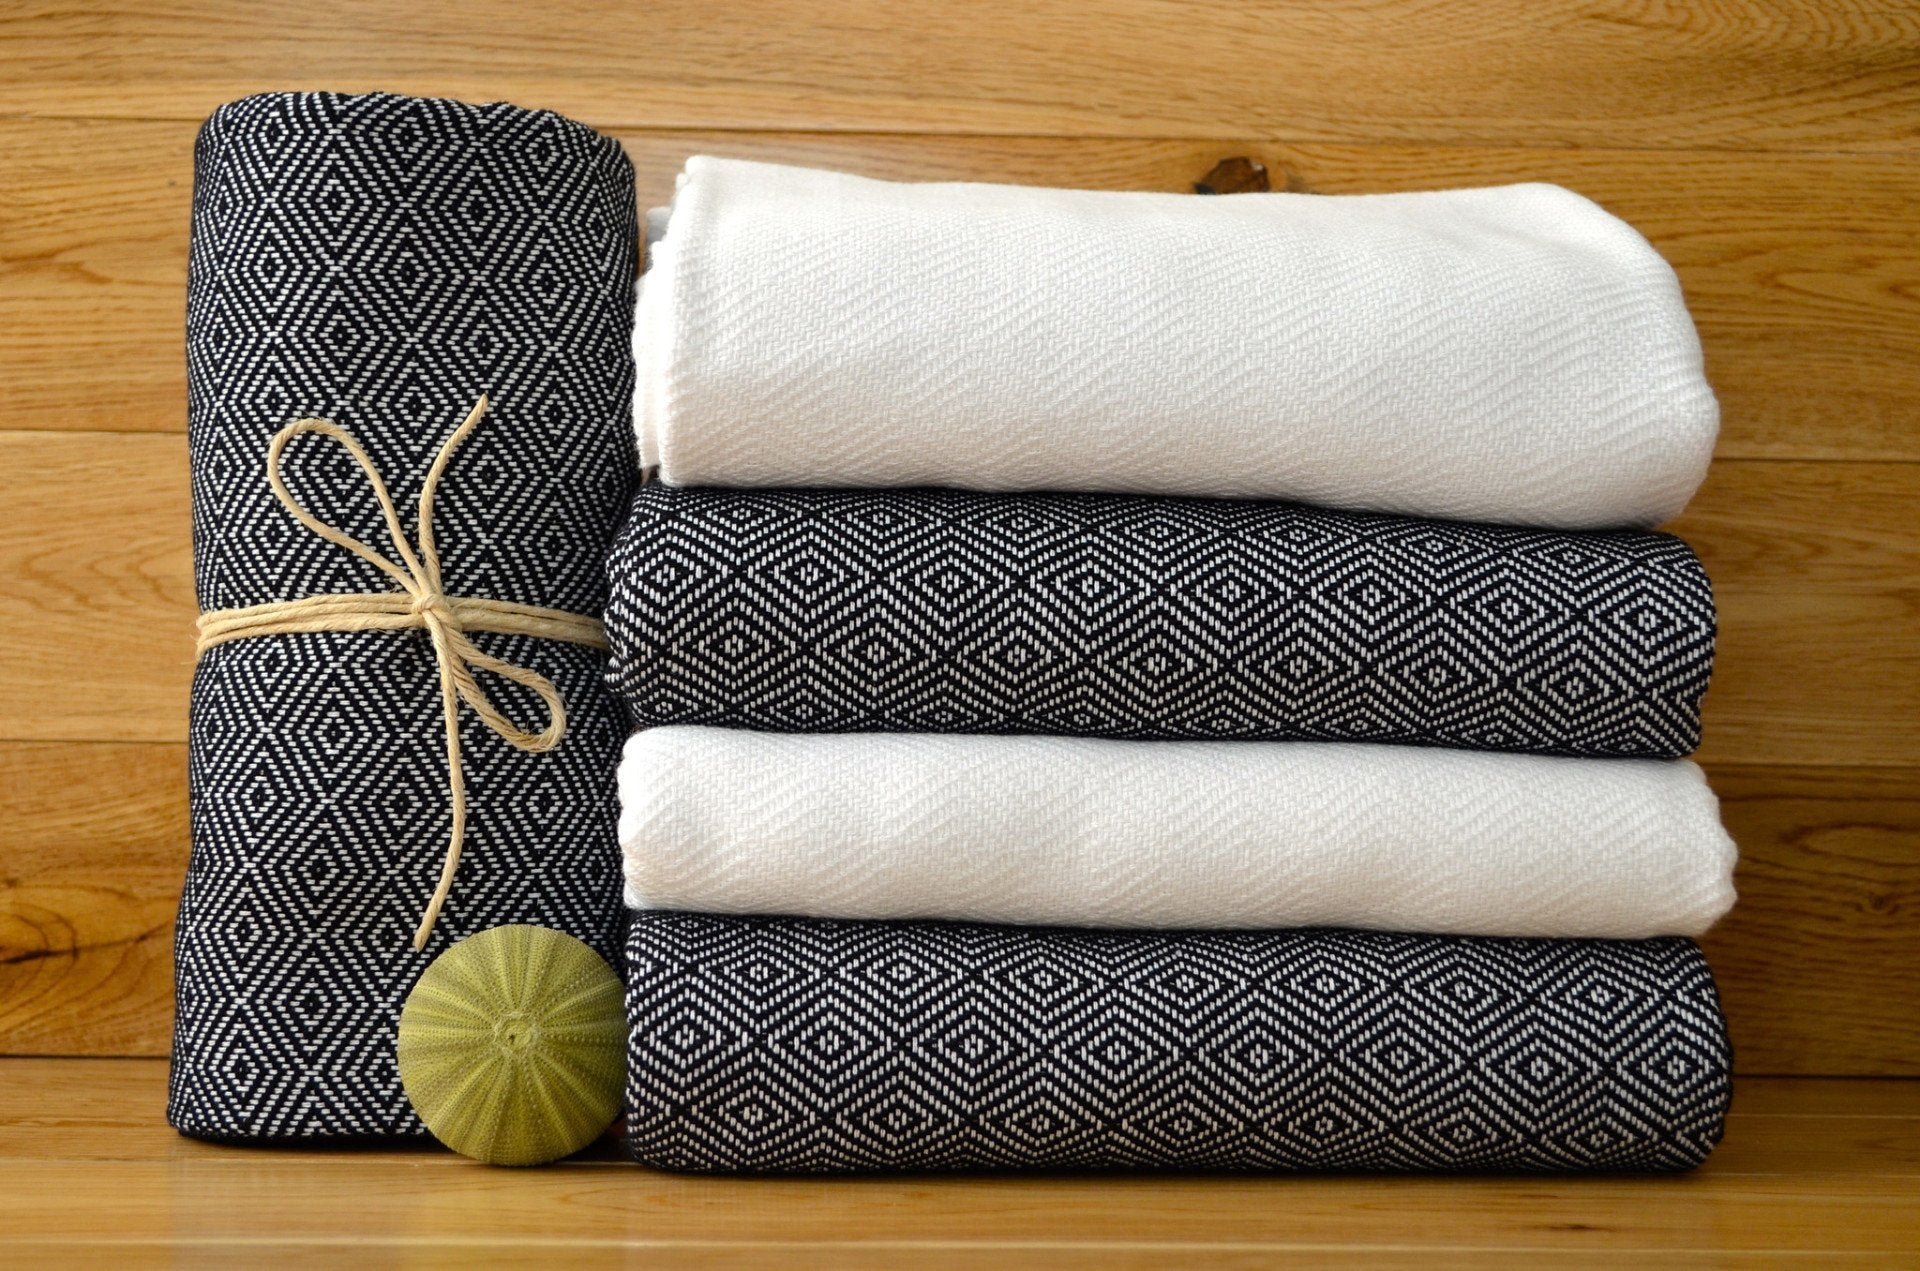 Diamond Pestemal Towel - Authentic Turkish Towel - Eco-friendly Hammam Towel - Perfect Travel Towel - Pestemal - Peshtemal